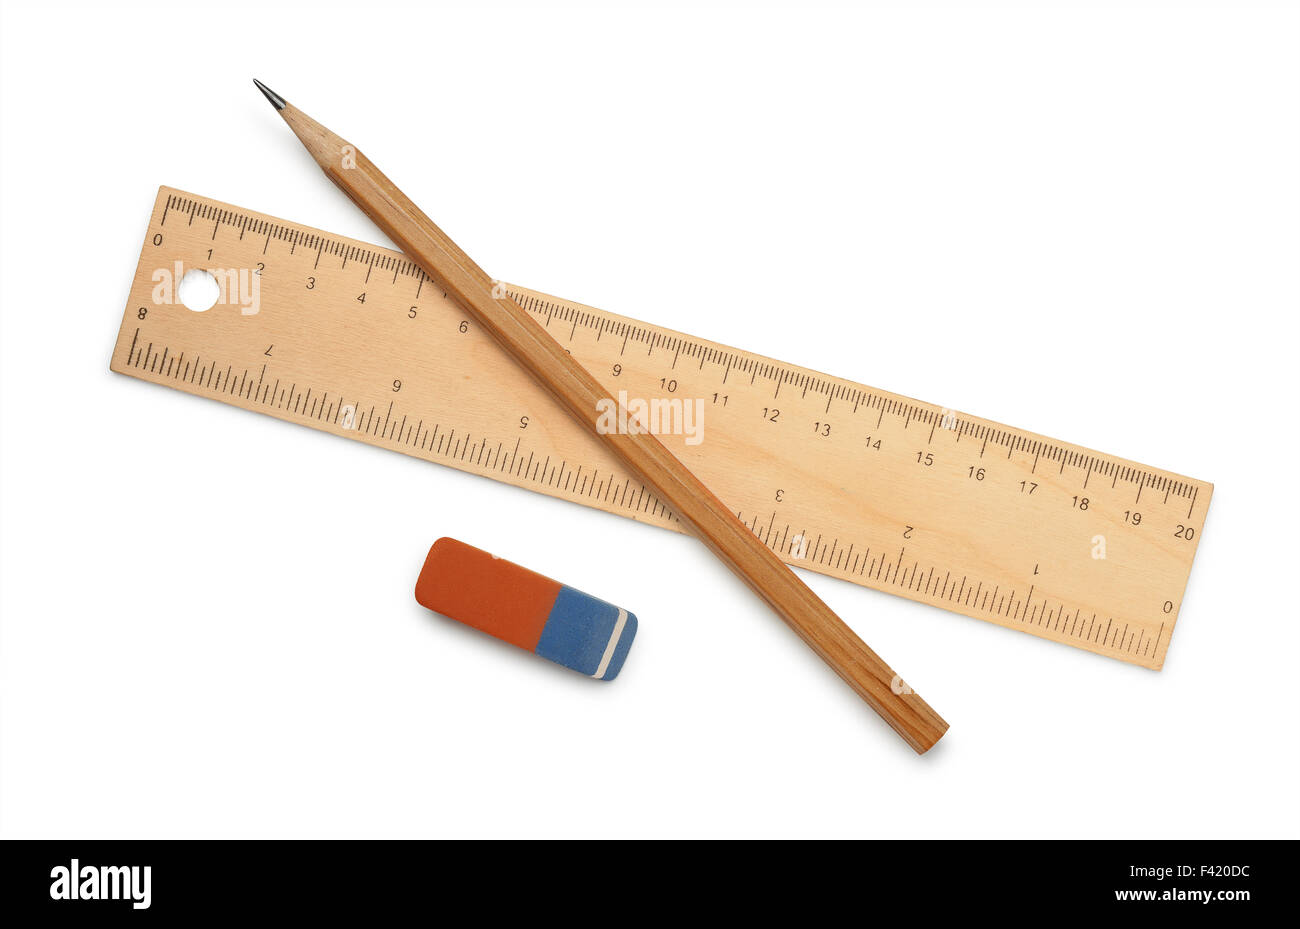 Ruler, pencil and eraser isolated on white - Stock Image